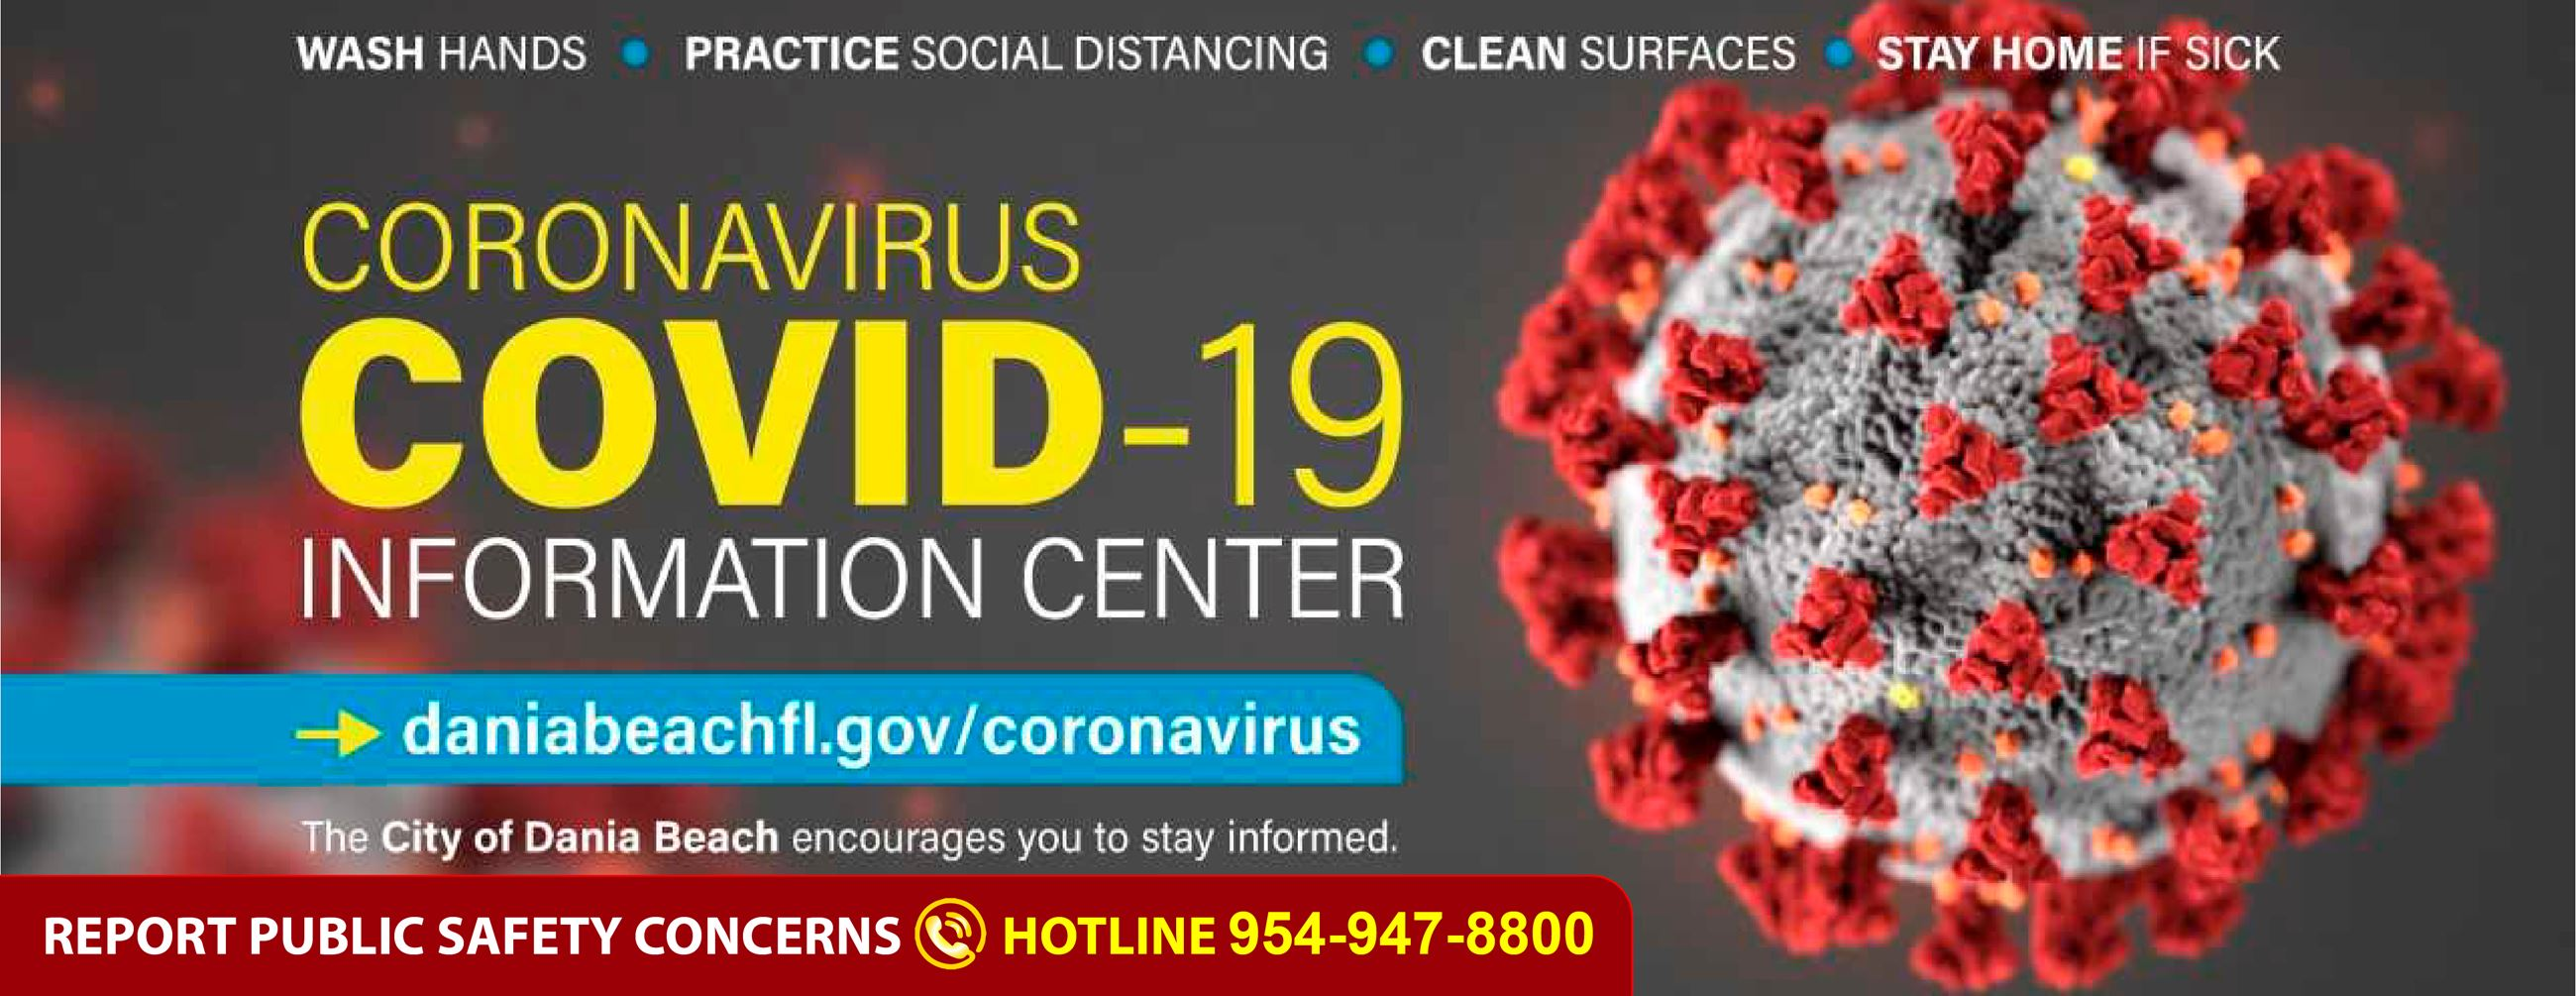 Dania Beach Coronavirus Information Center REPORT PUBLIC SAFETY CONCERNS  HOTLINE - 954-947-8800